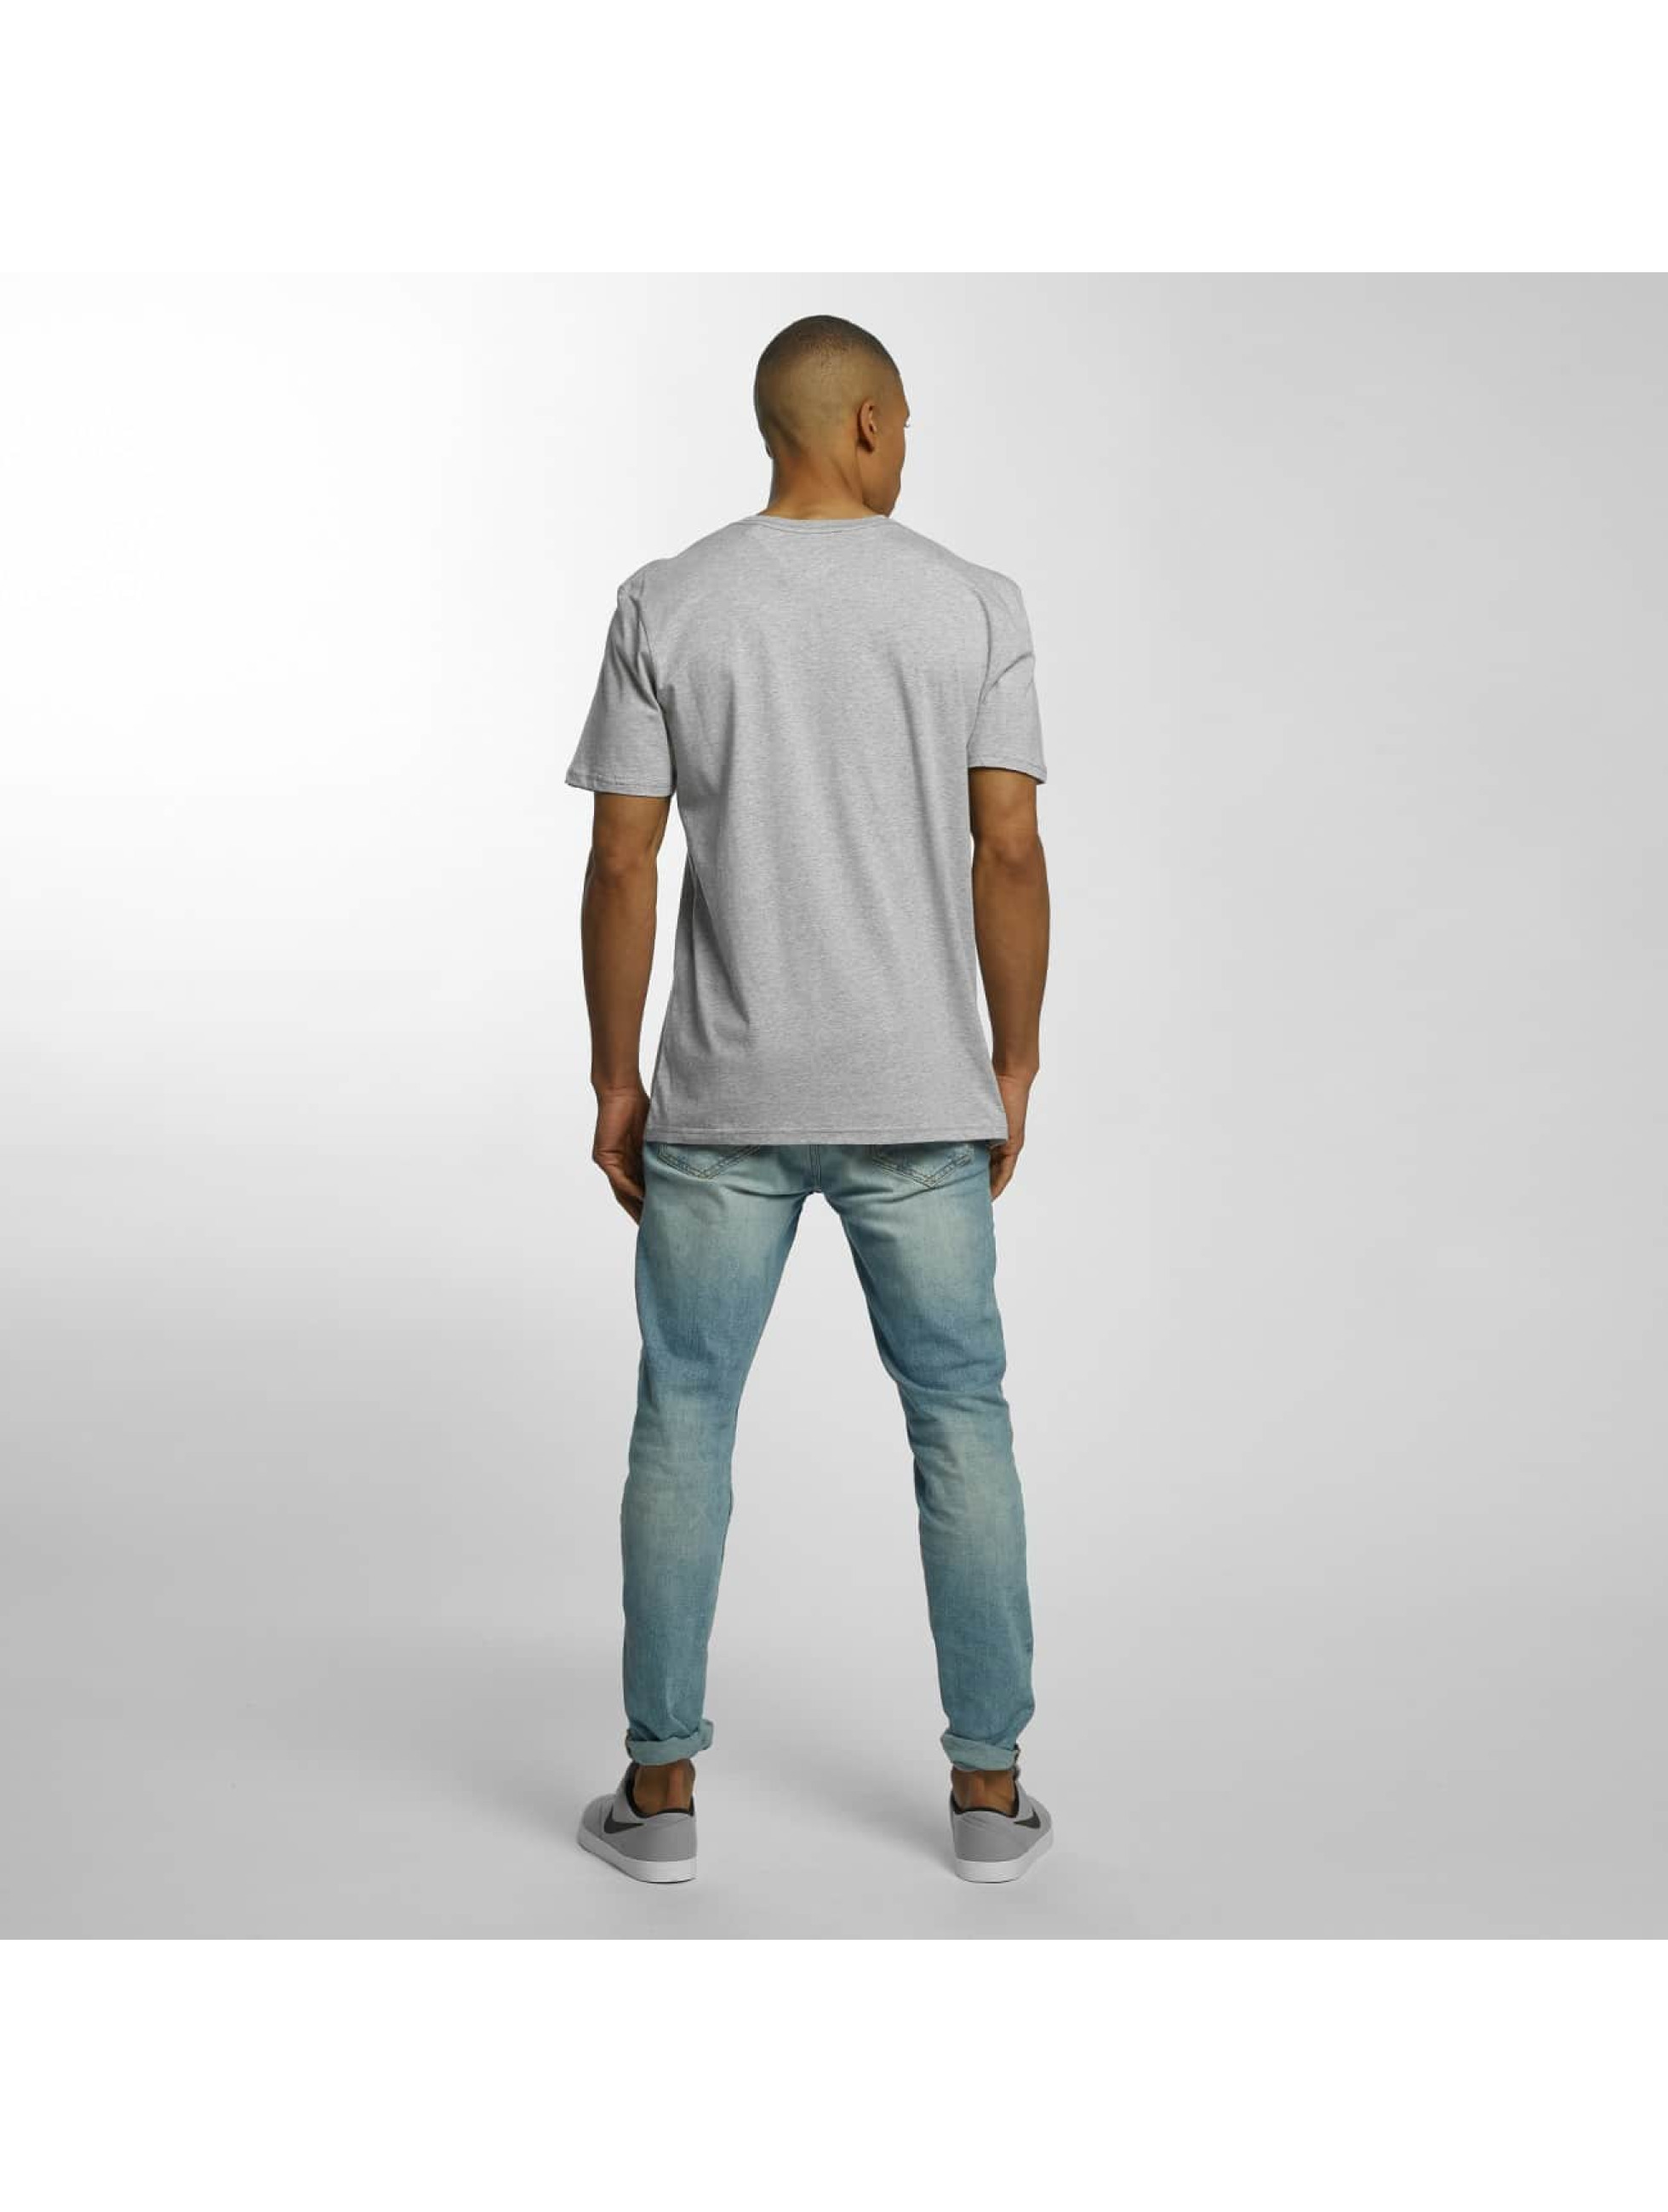 Quiksilver T-Shirt Classic Daily Surf grey